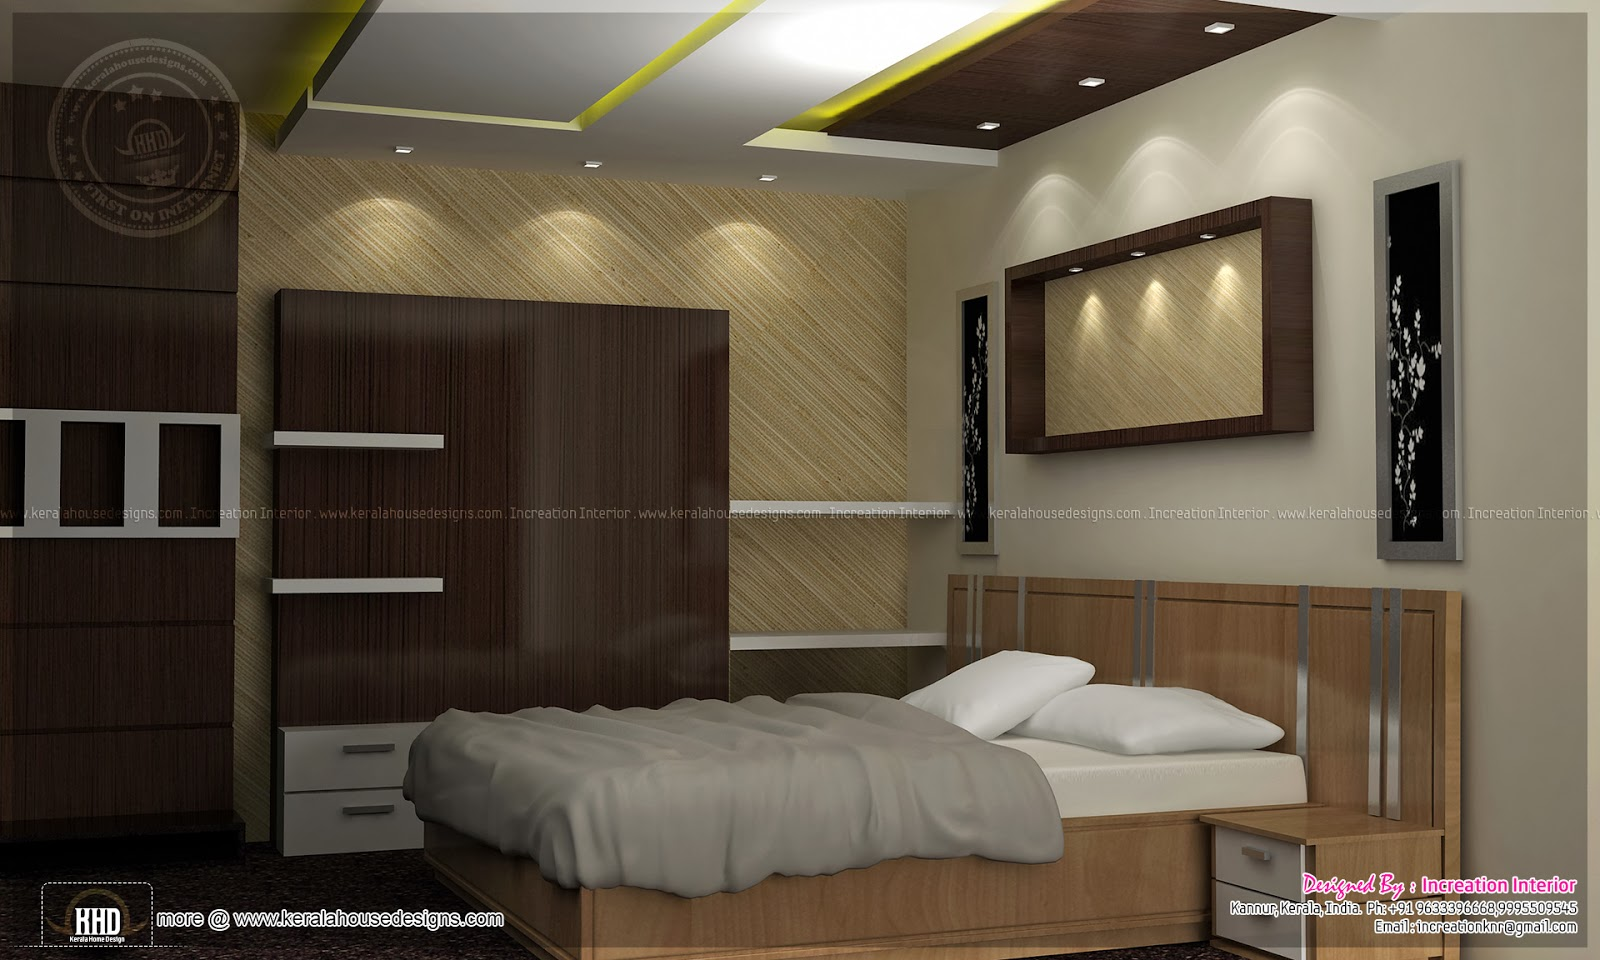 Bedroom interior designs kerala home design and floor plans - Interior design for bedroom in india ...